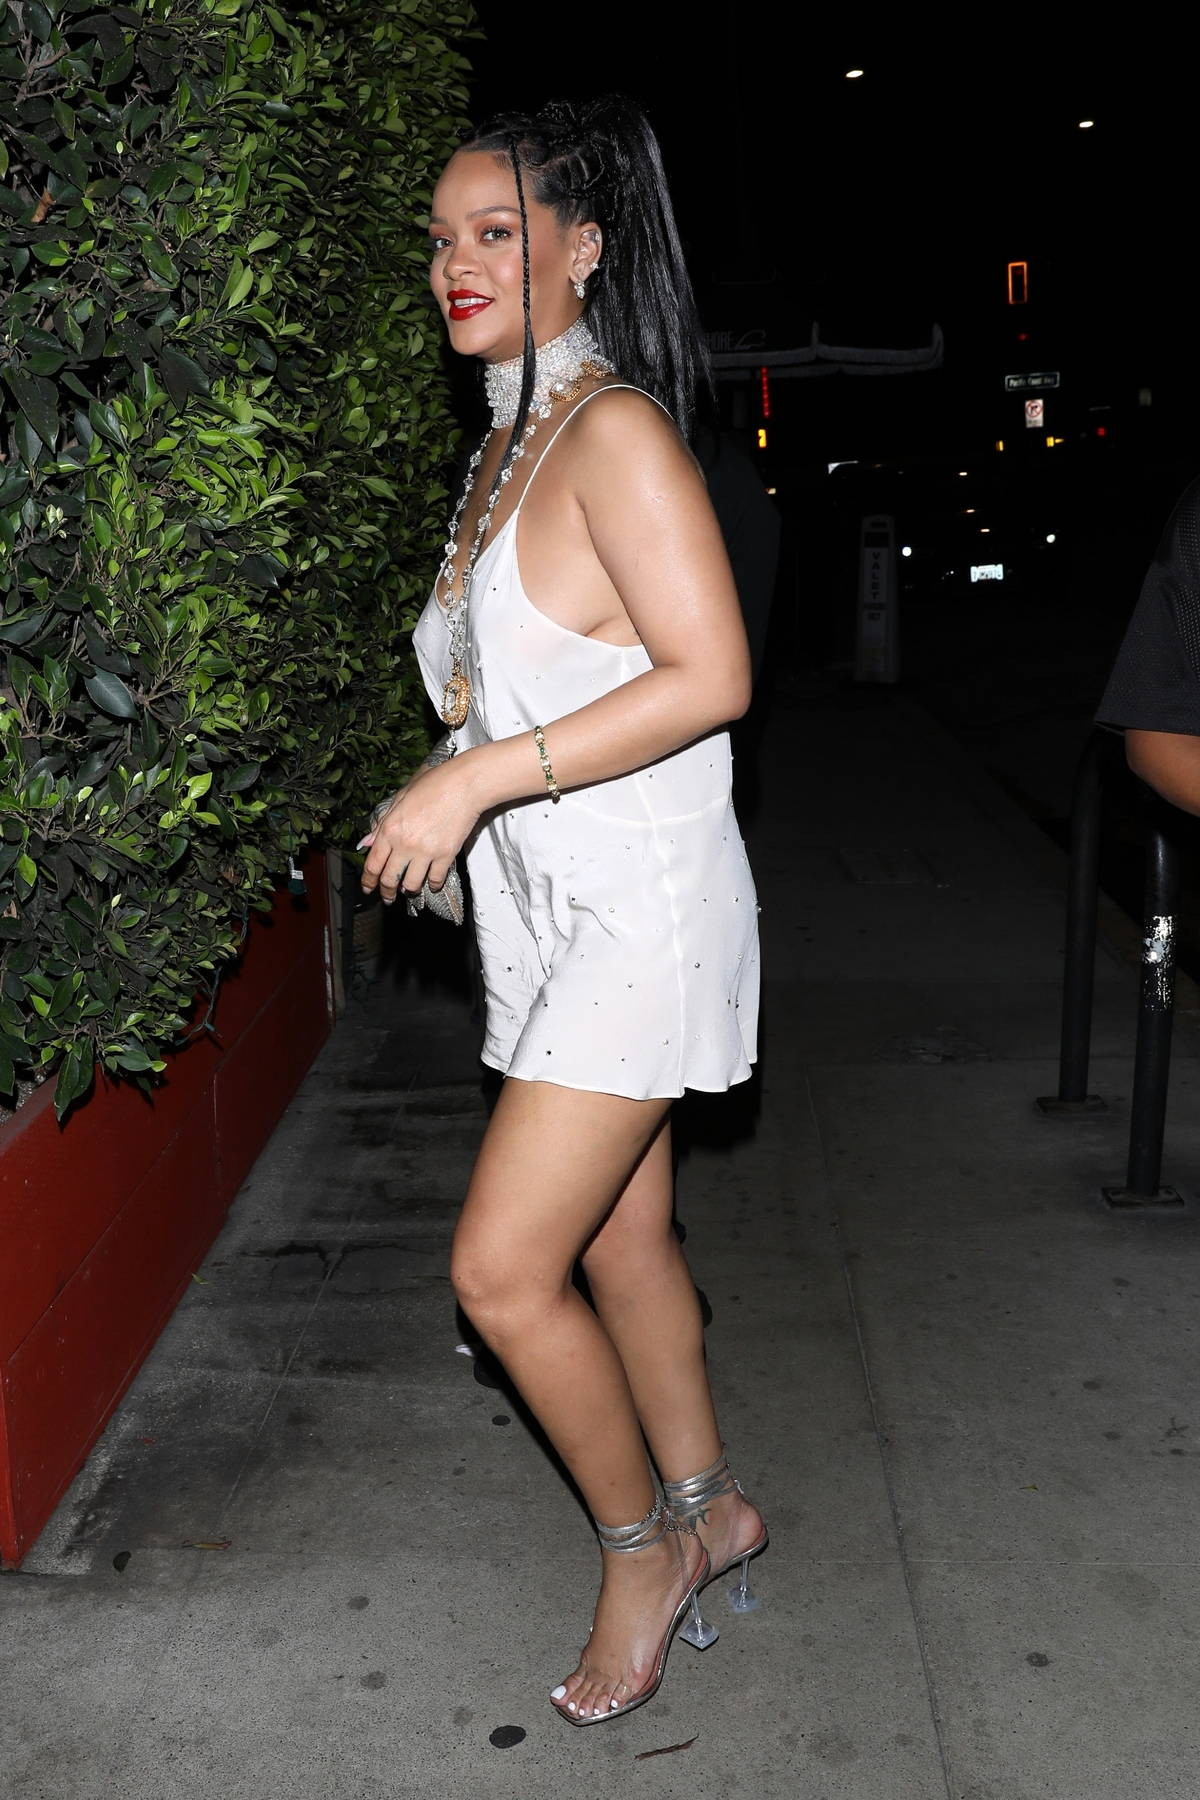 Rihanna looks radiant in a white mini dress while out for dinner with her little friend at Giorgio Baldi in Santa Monica, California